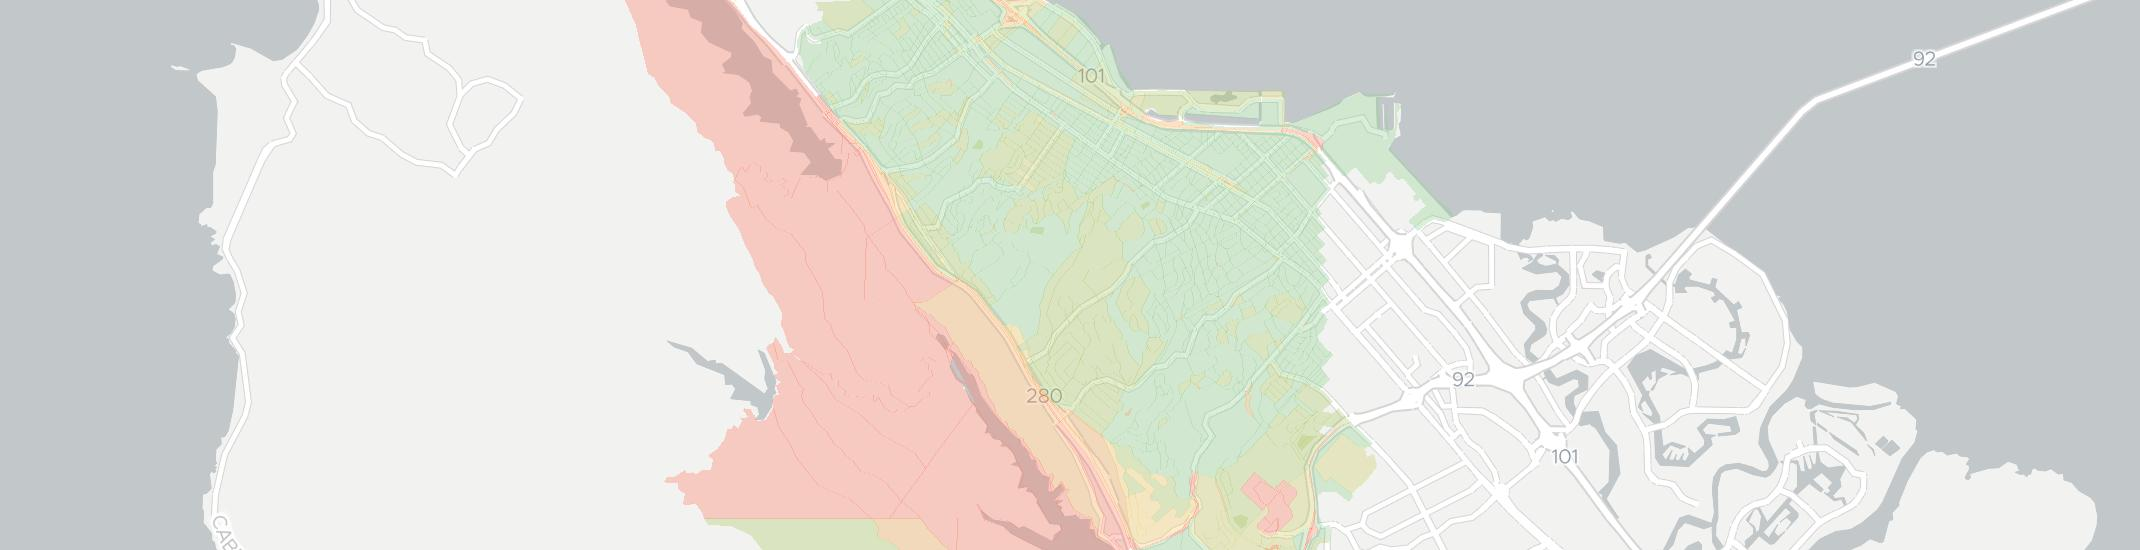 Burlingame Internet Competition Map. Click for interactive map.